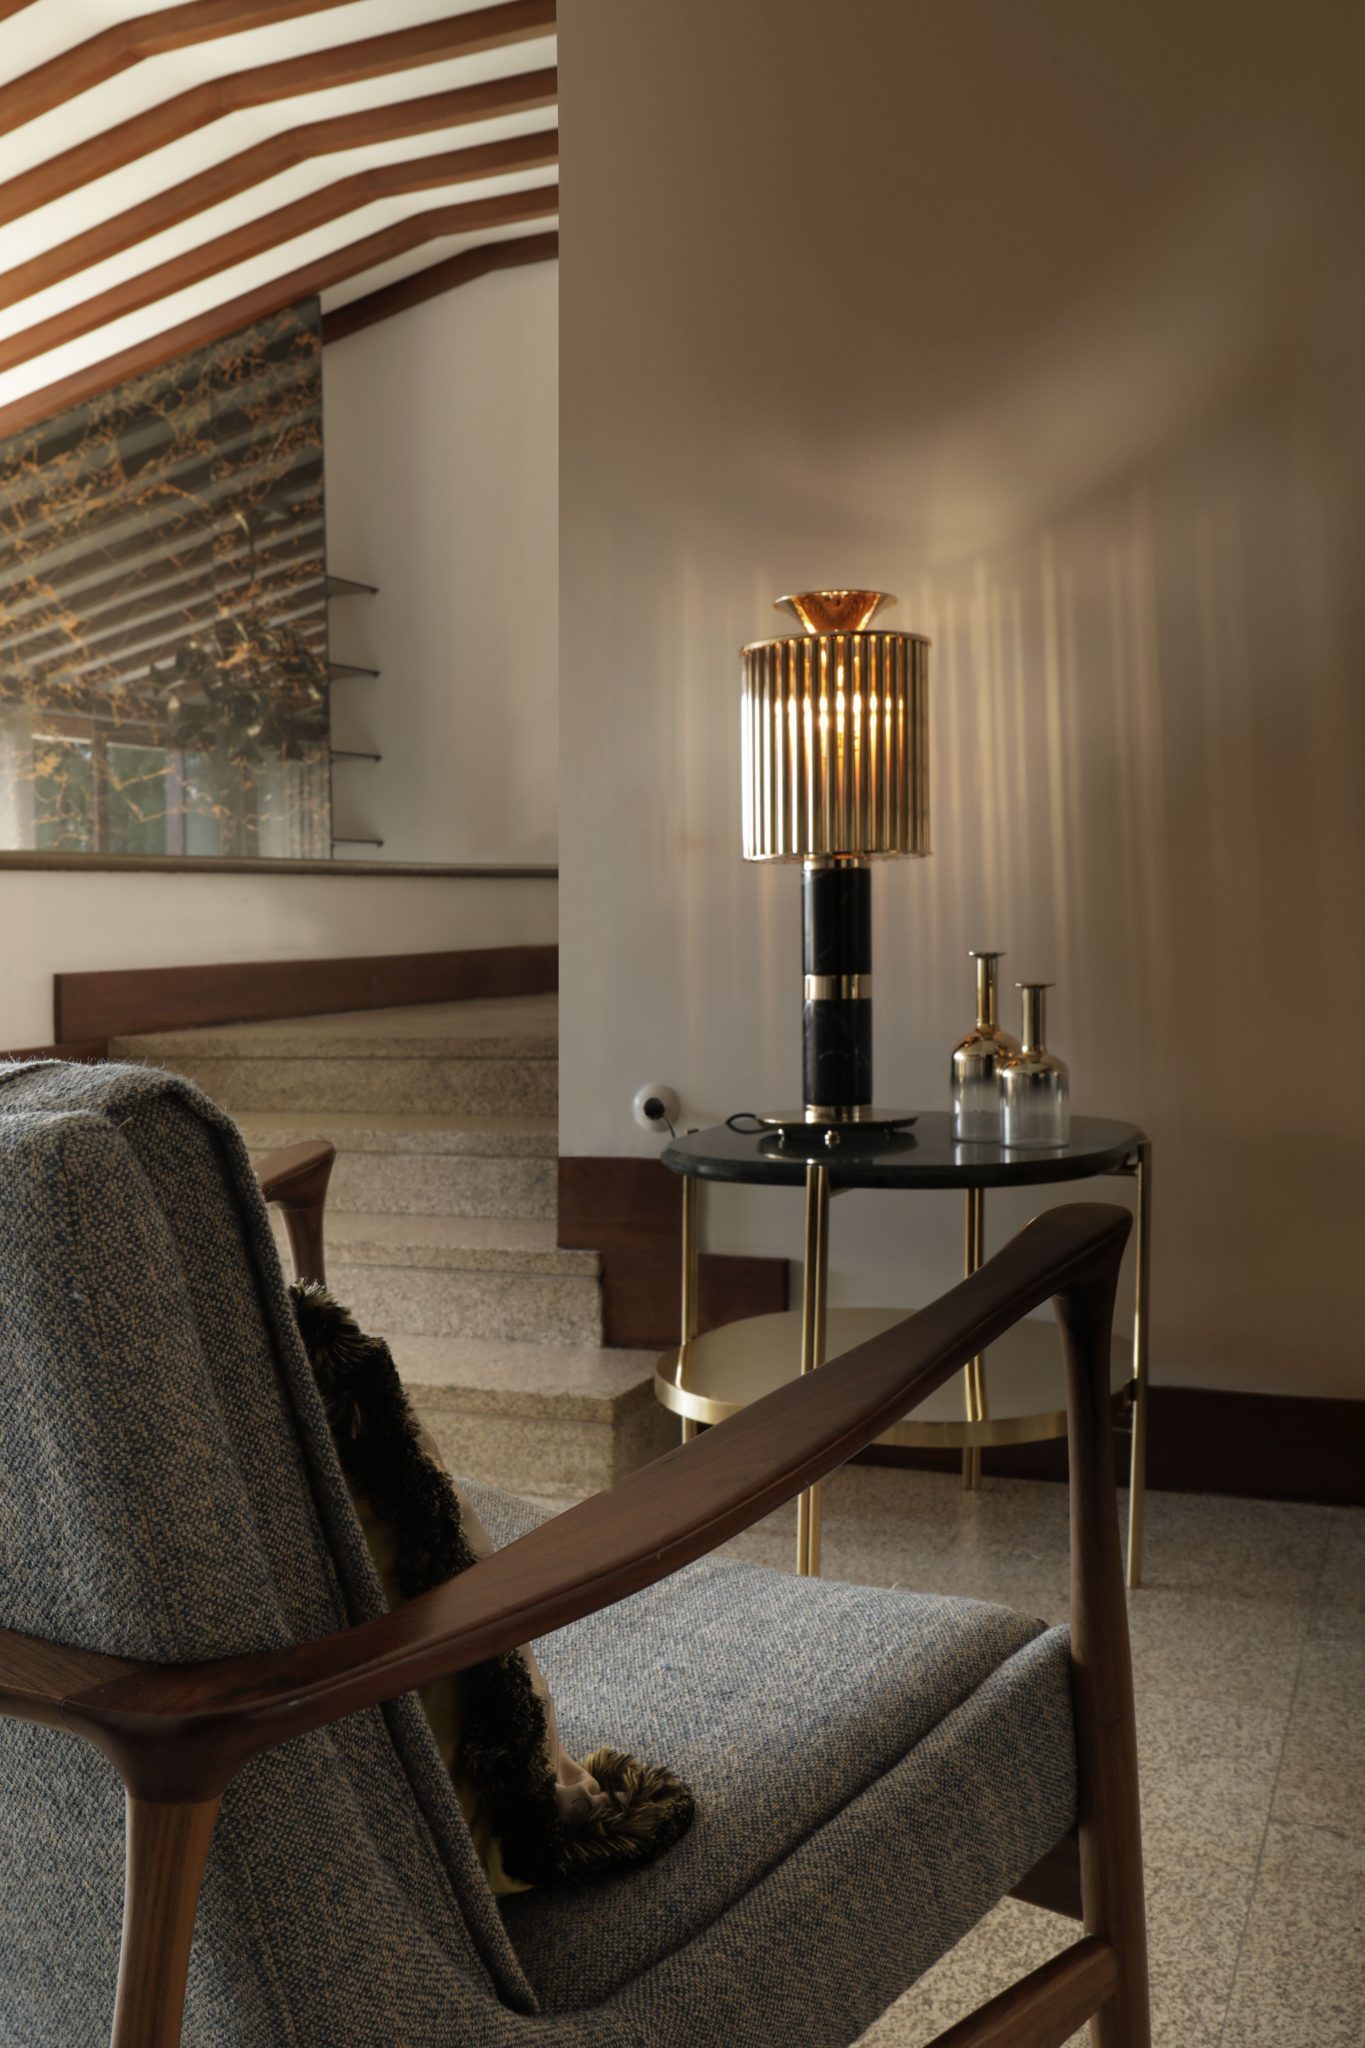 Handcrafted Lighting Designs Suited For Your Hallway